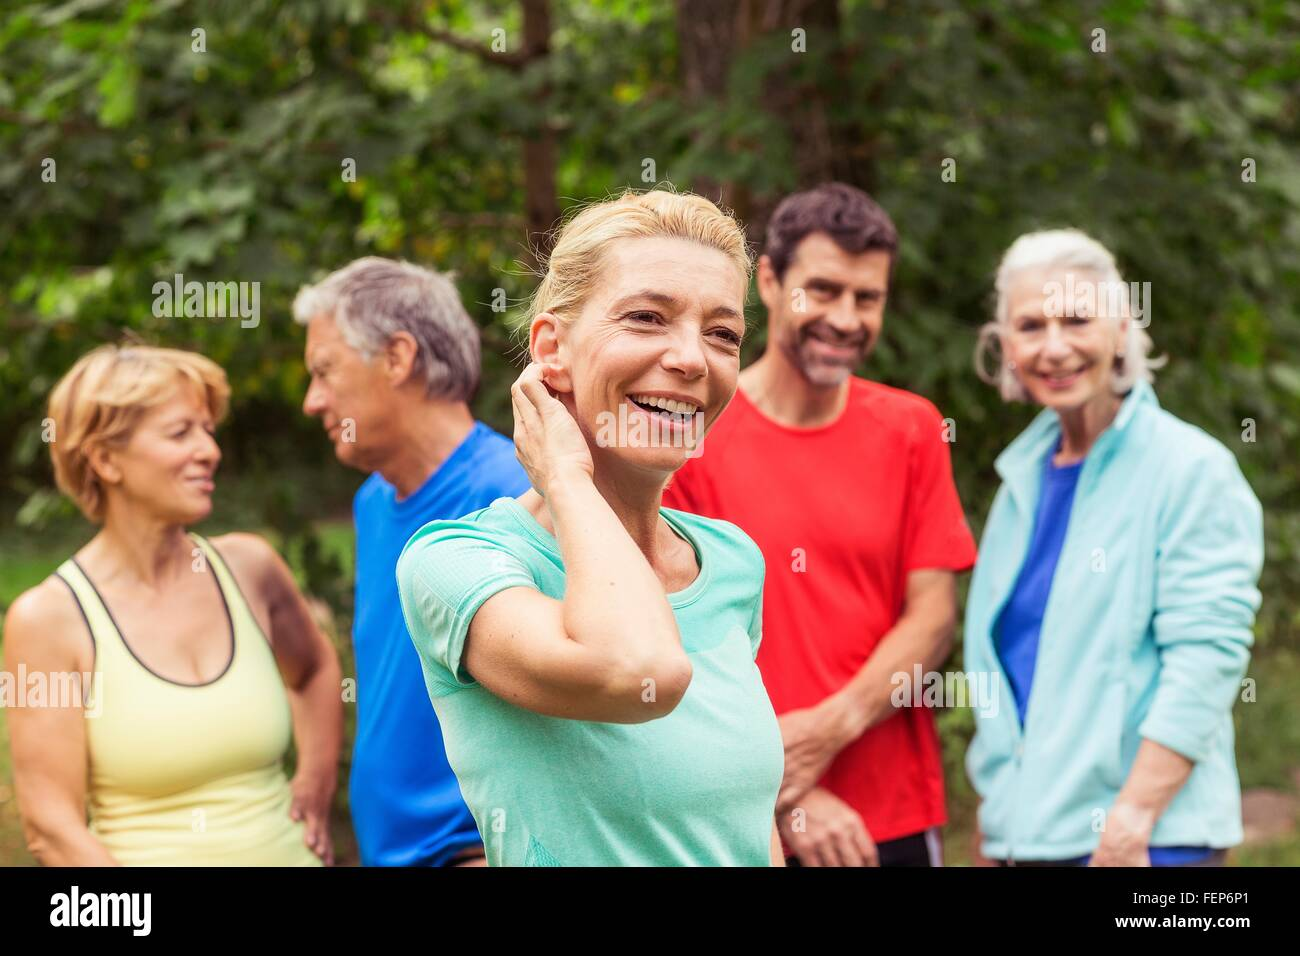 Group of adults, outdoors, smiling - Stock Image